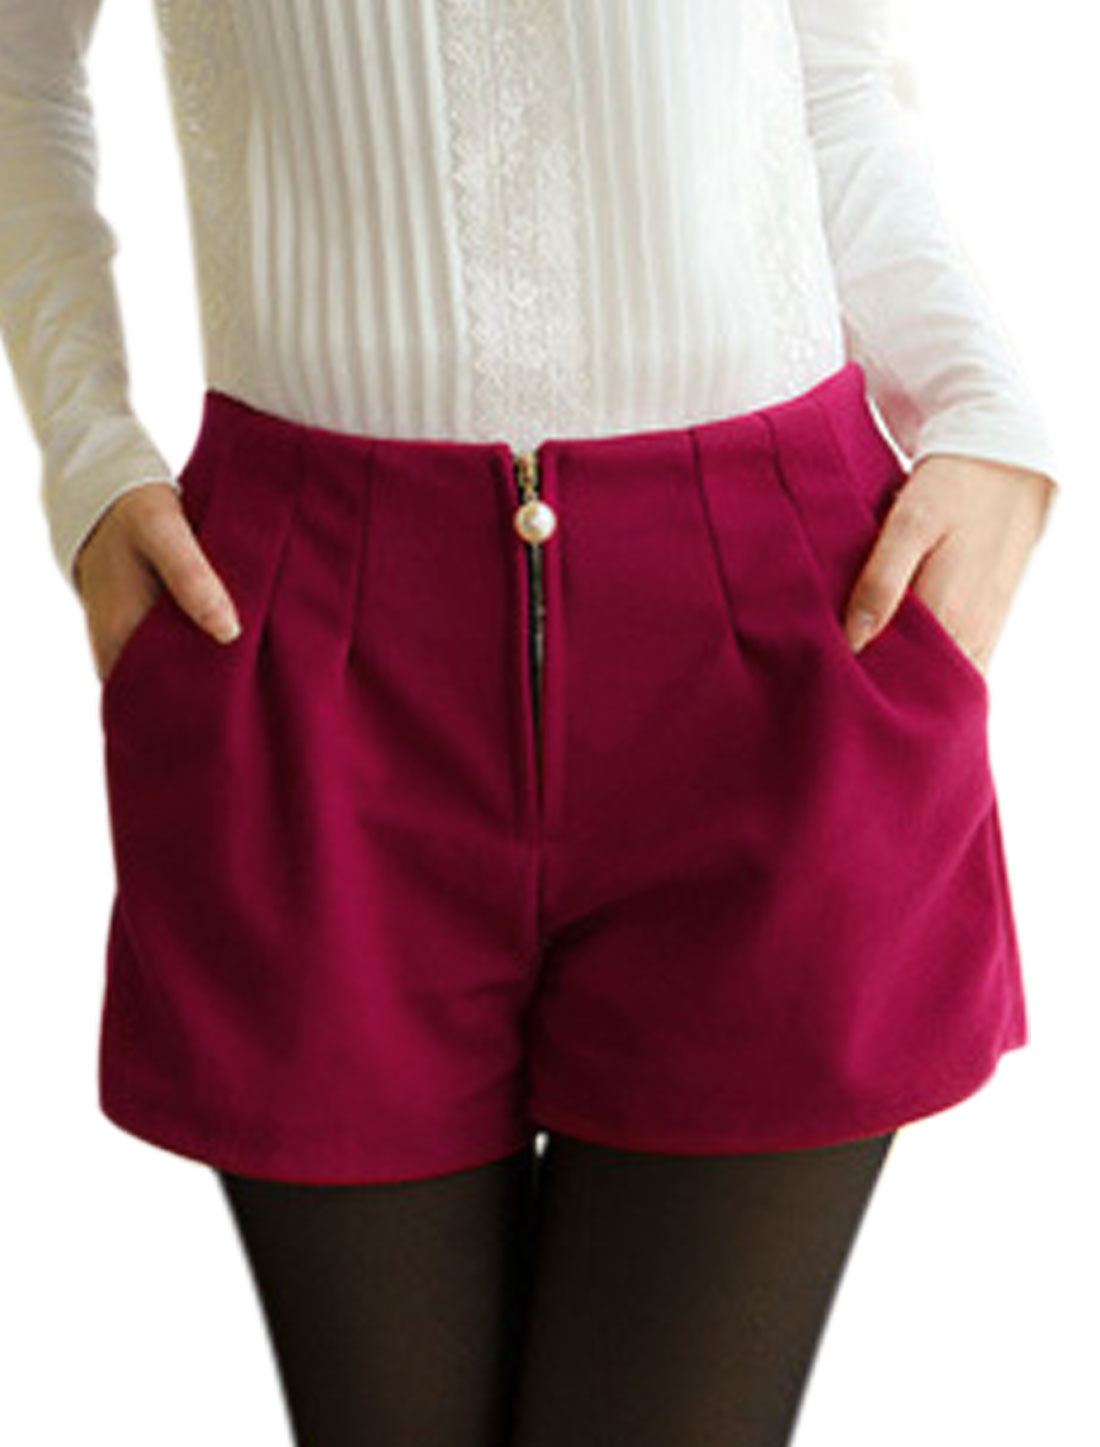 Stretchy Waist Pockets Sides Fuchsia Worsted Shorts for Lady S